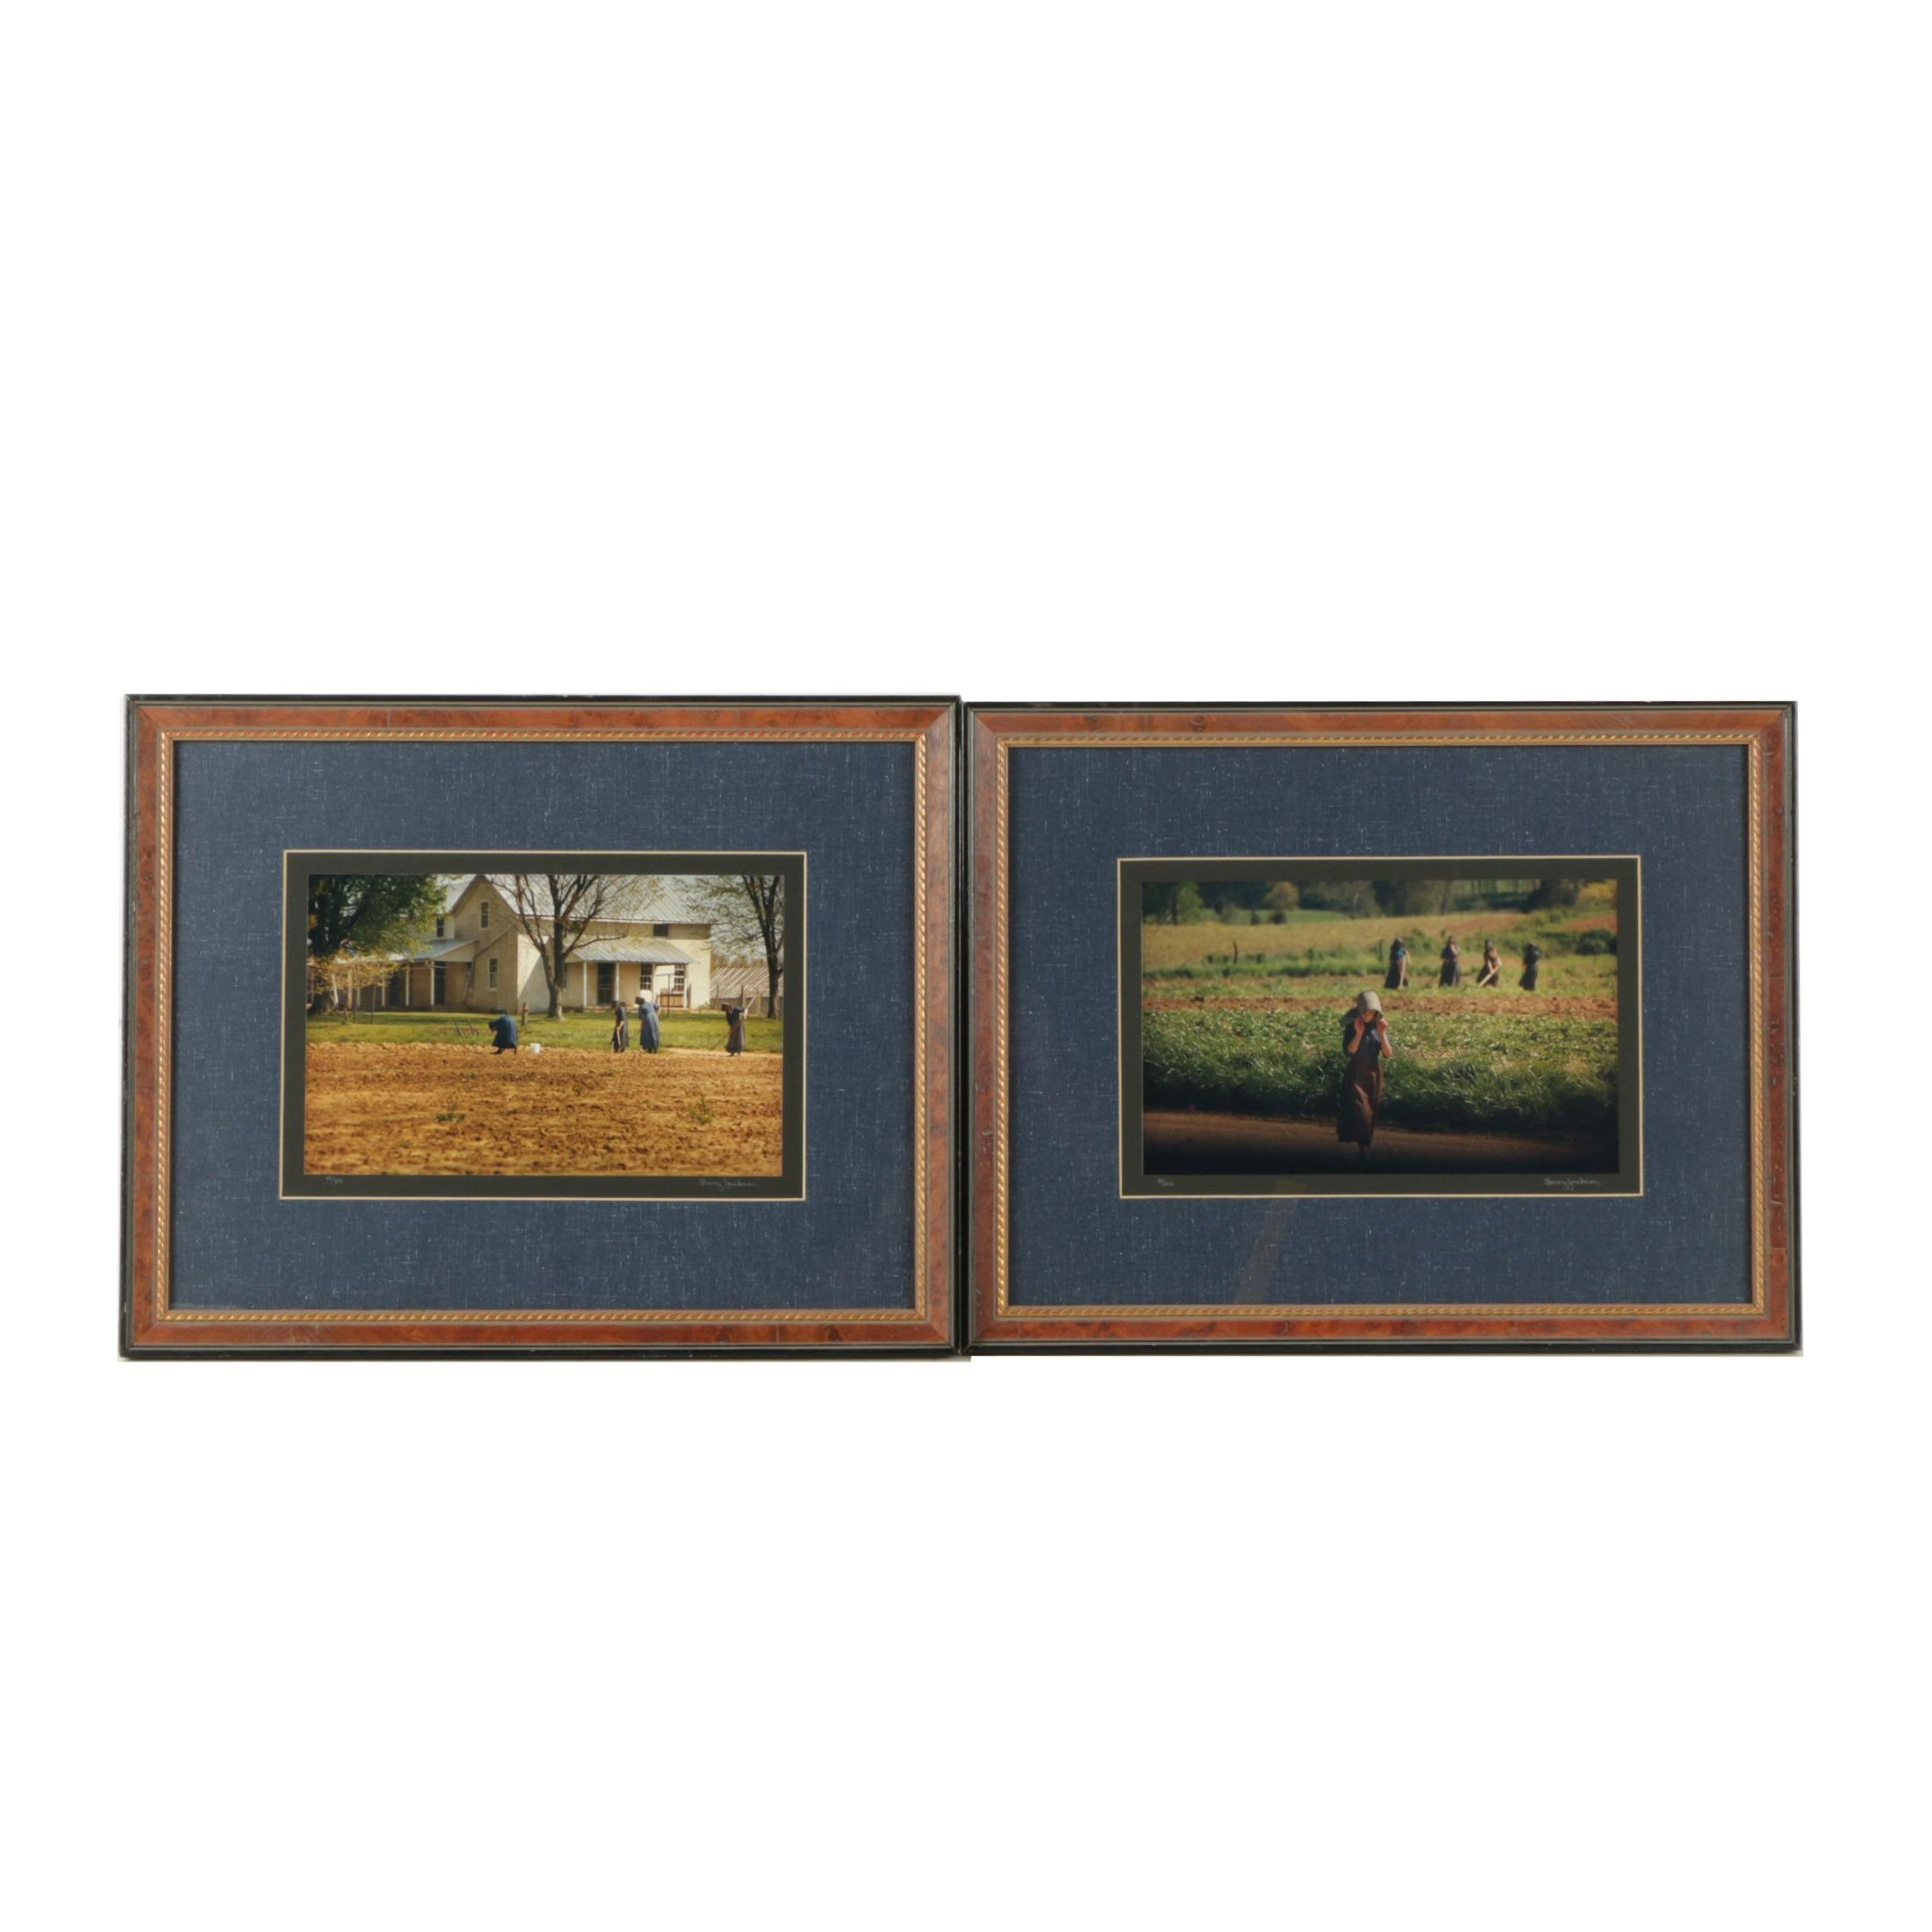 Barry Jackson Limited Edition Digital Color Photographs of an Amish Community